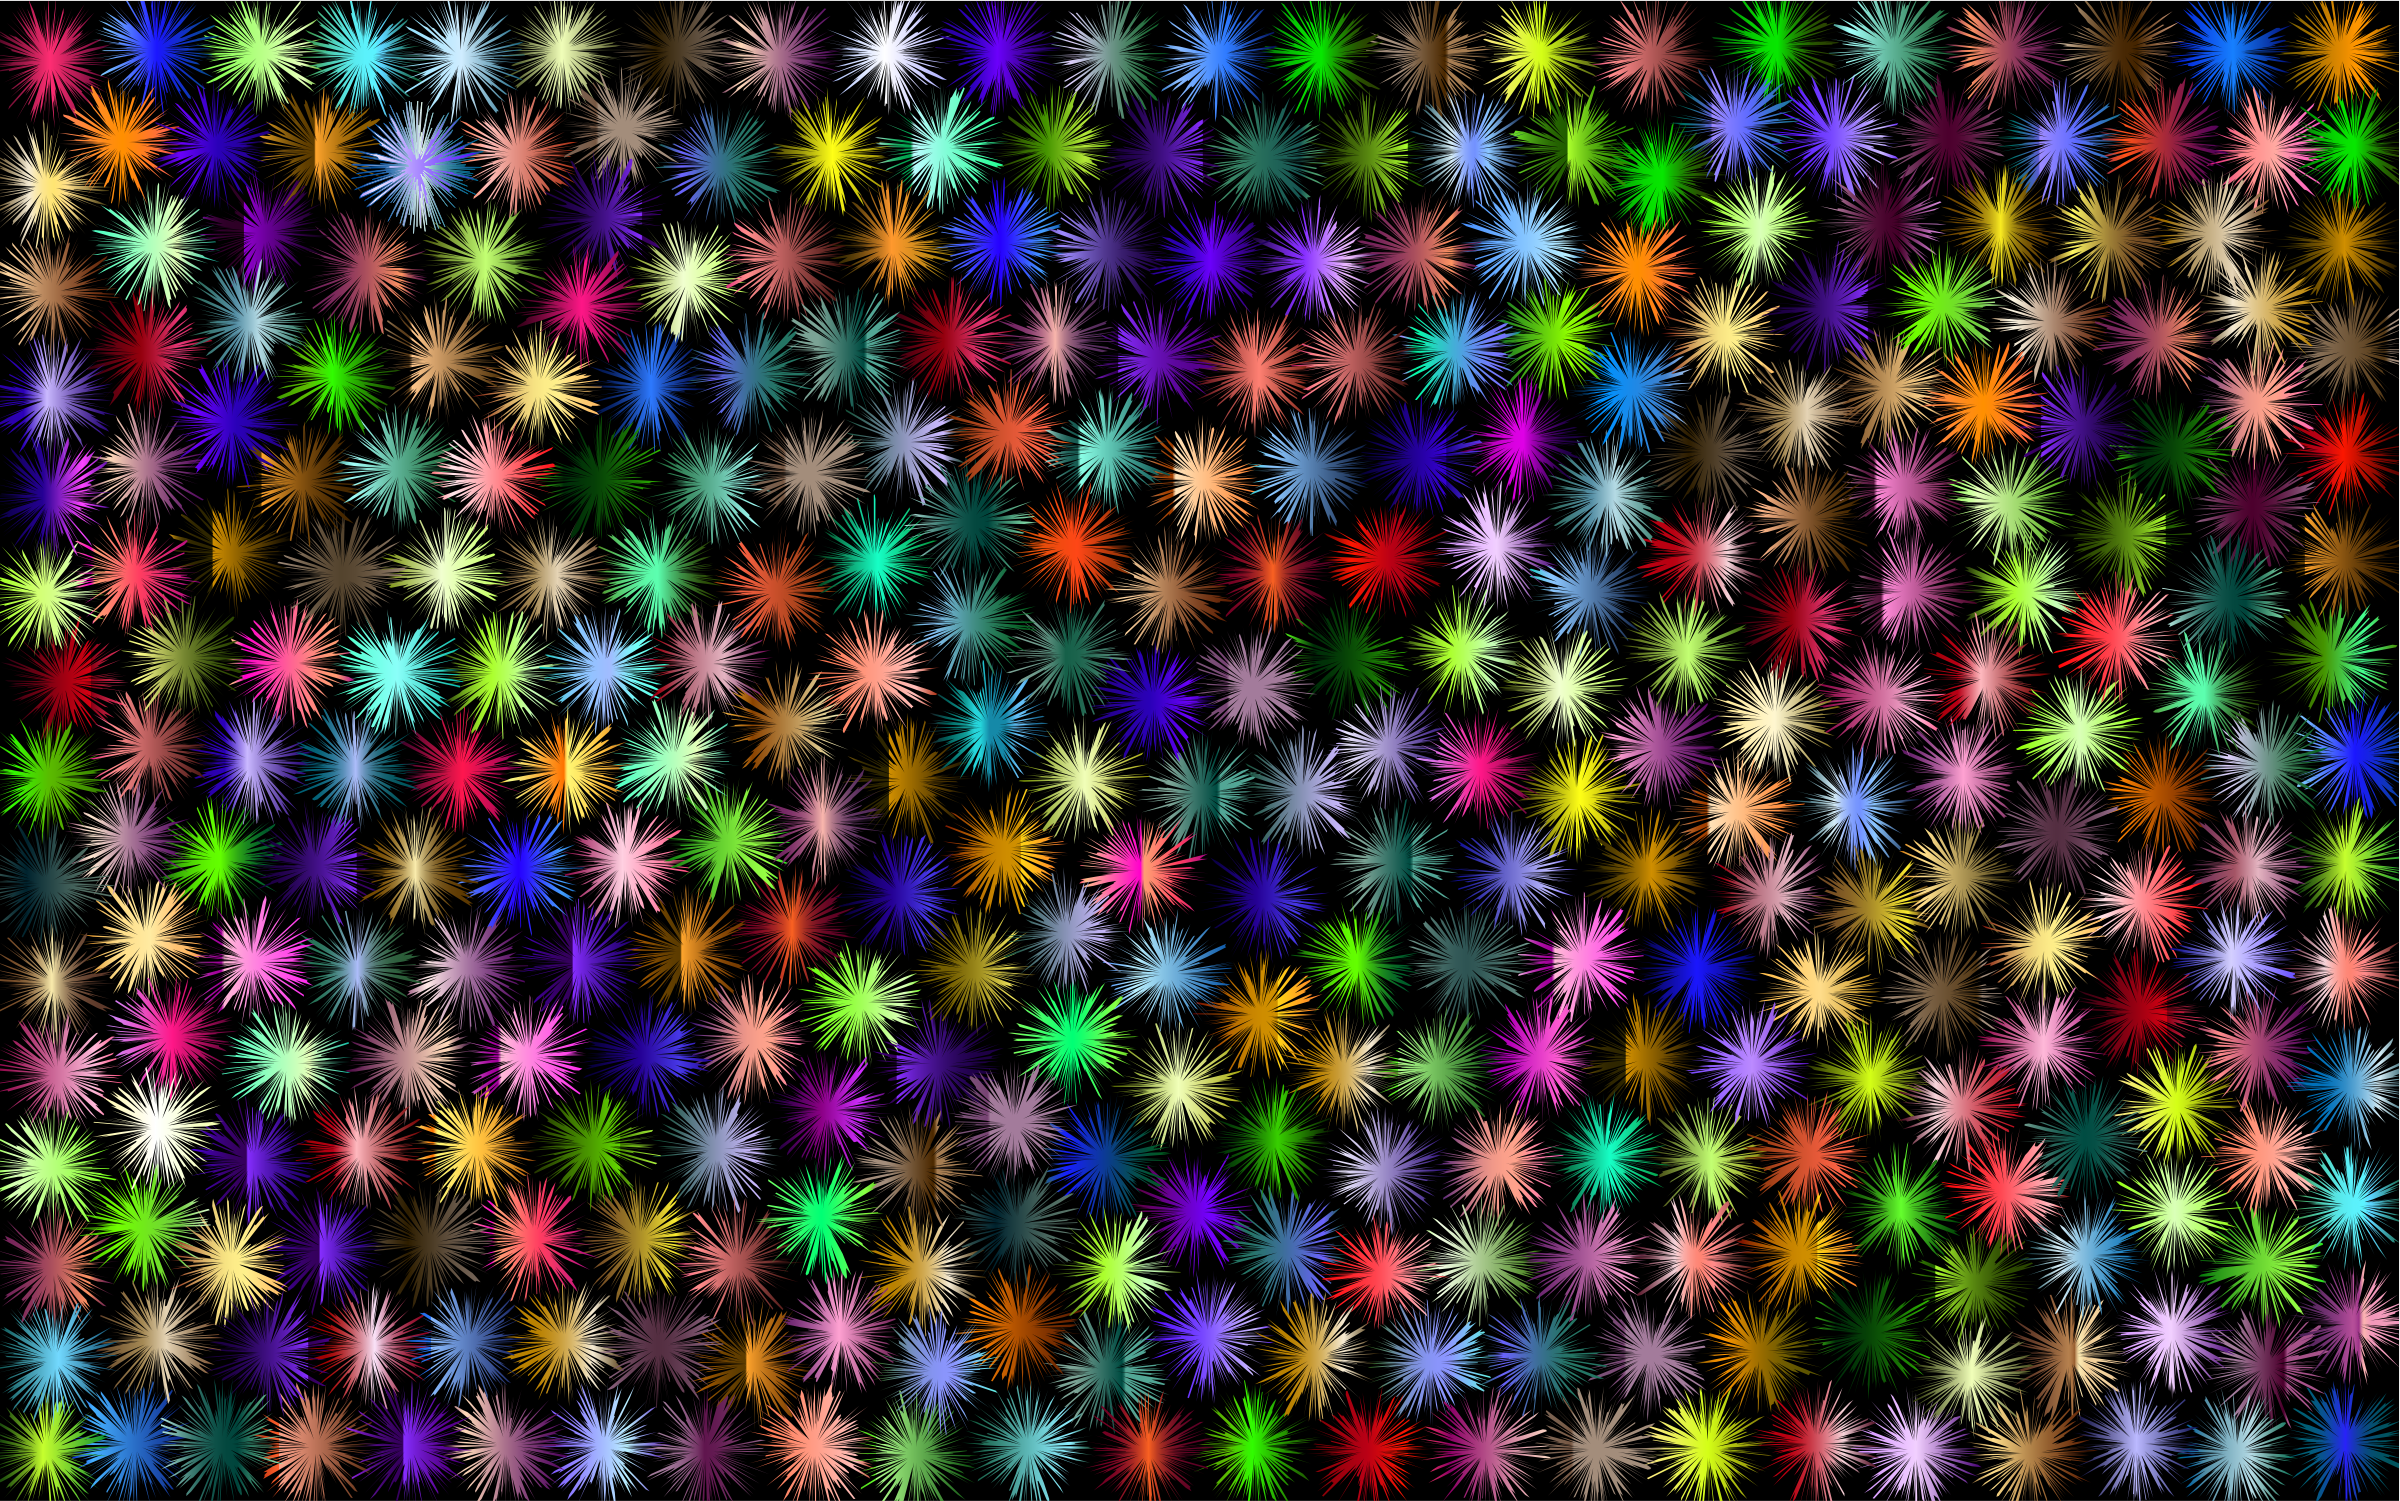 Prismatic Fuzzy Background 4 by GDJ